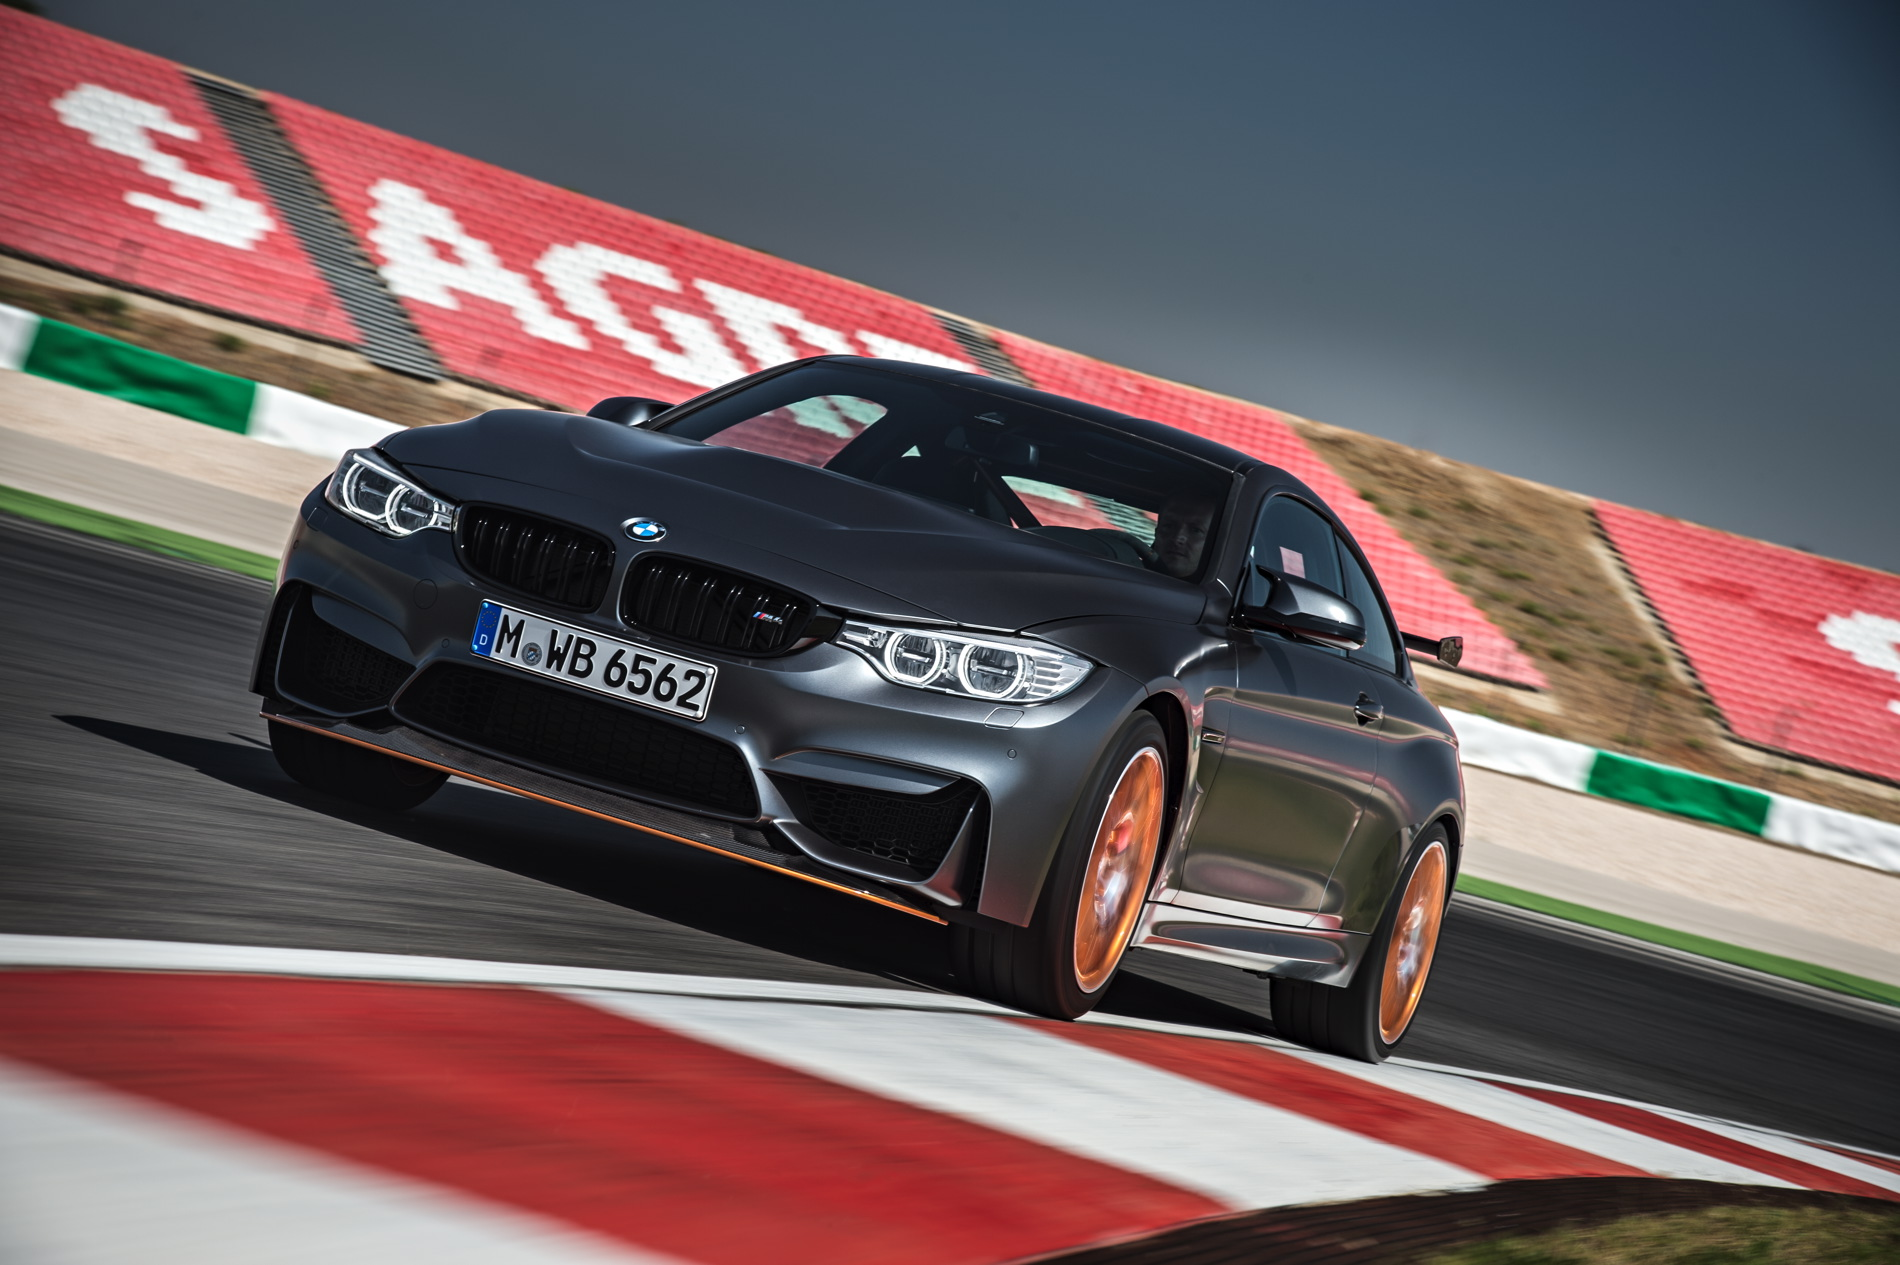 2016 BMW M4 GTS images 1900x1200 wallpaper 06